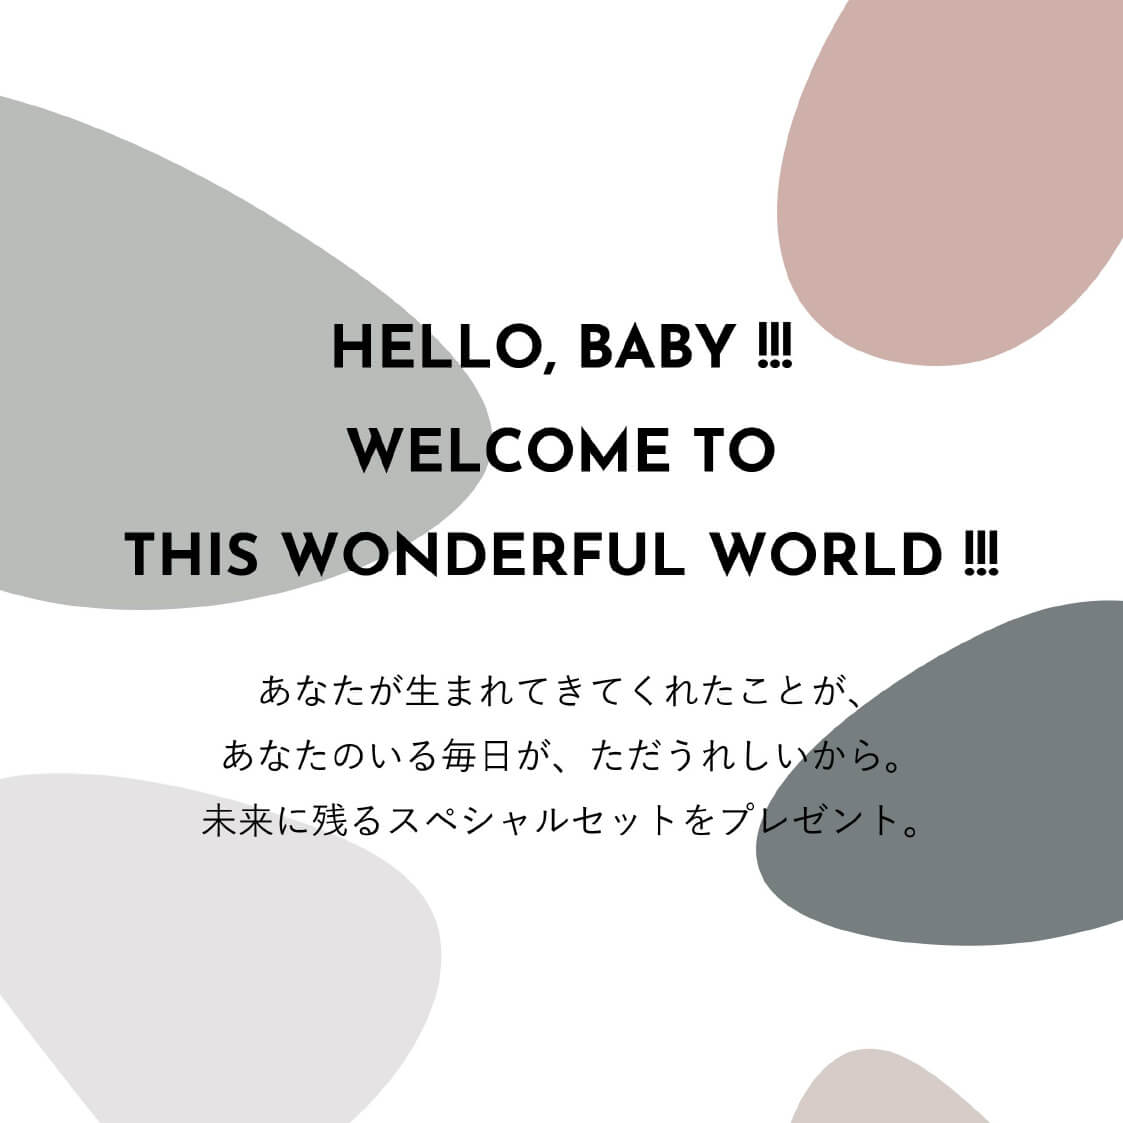 Welcome to this wonderful world!